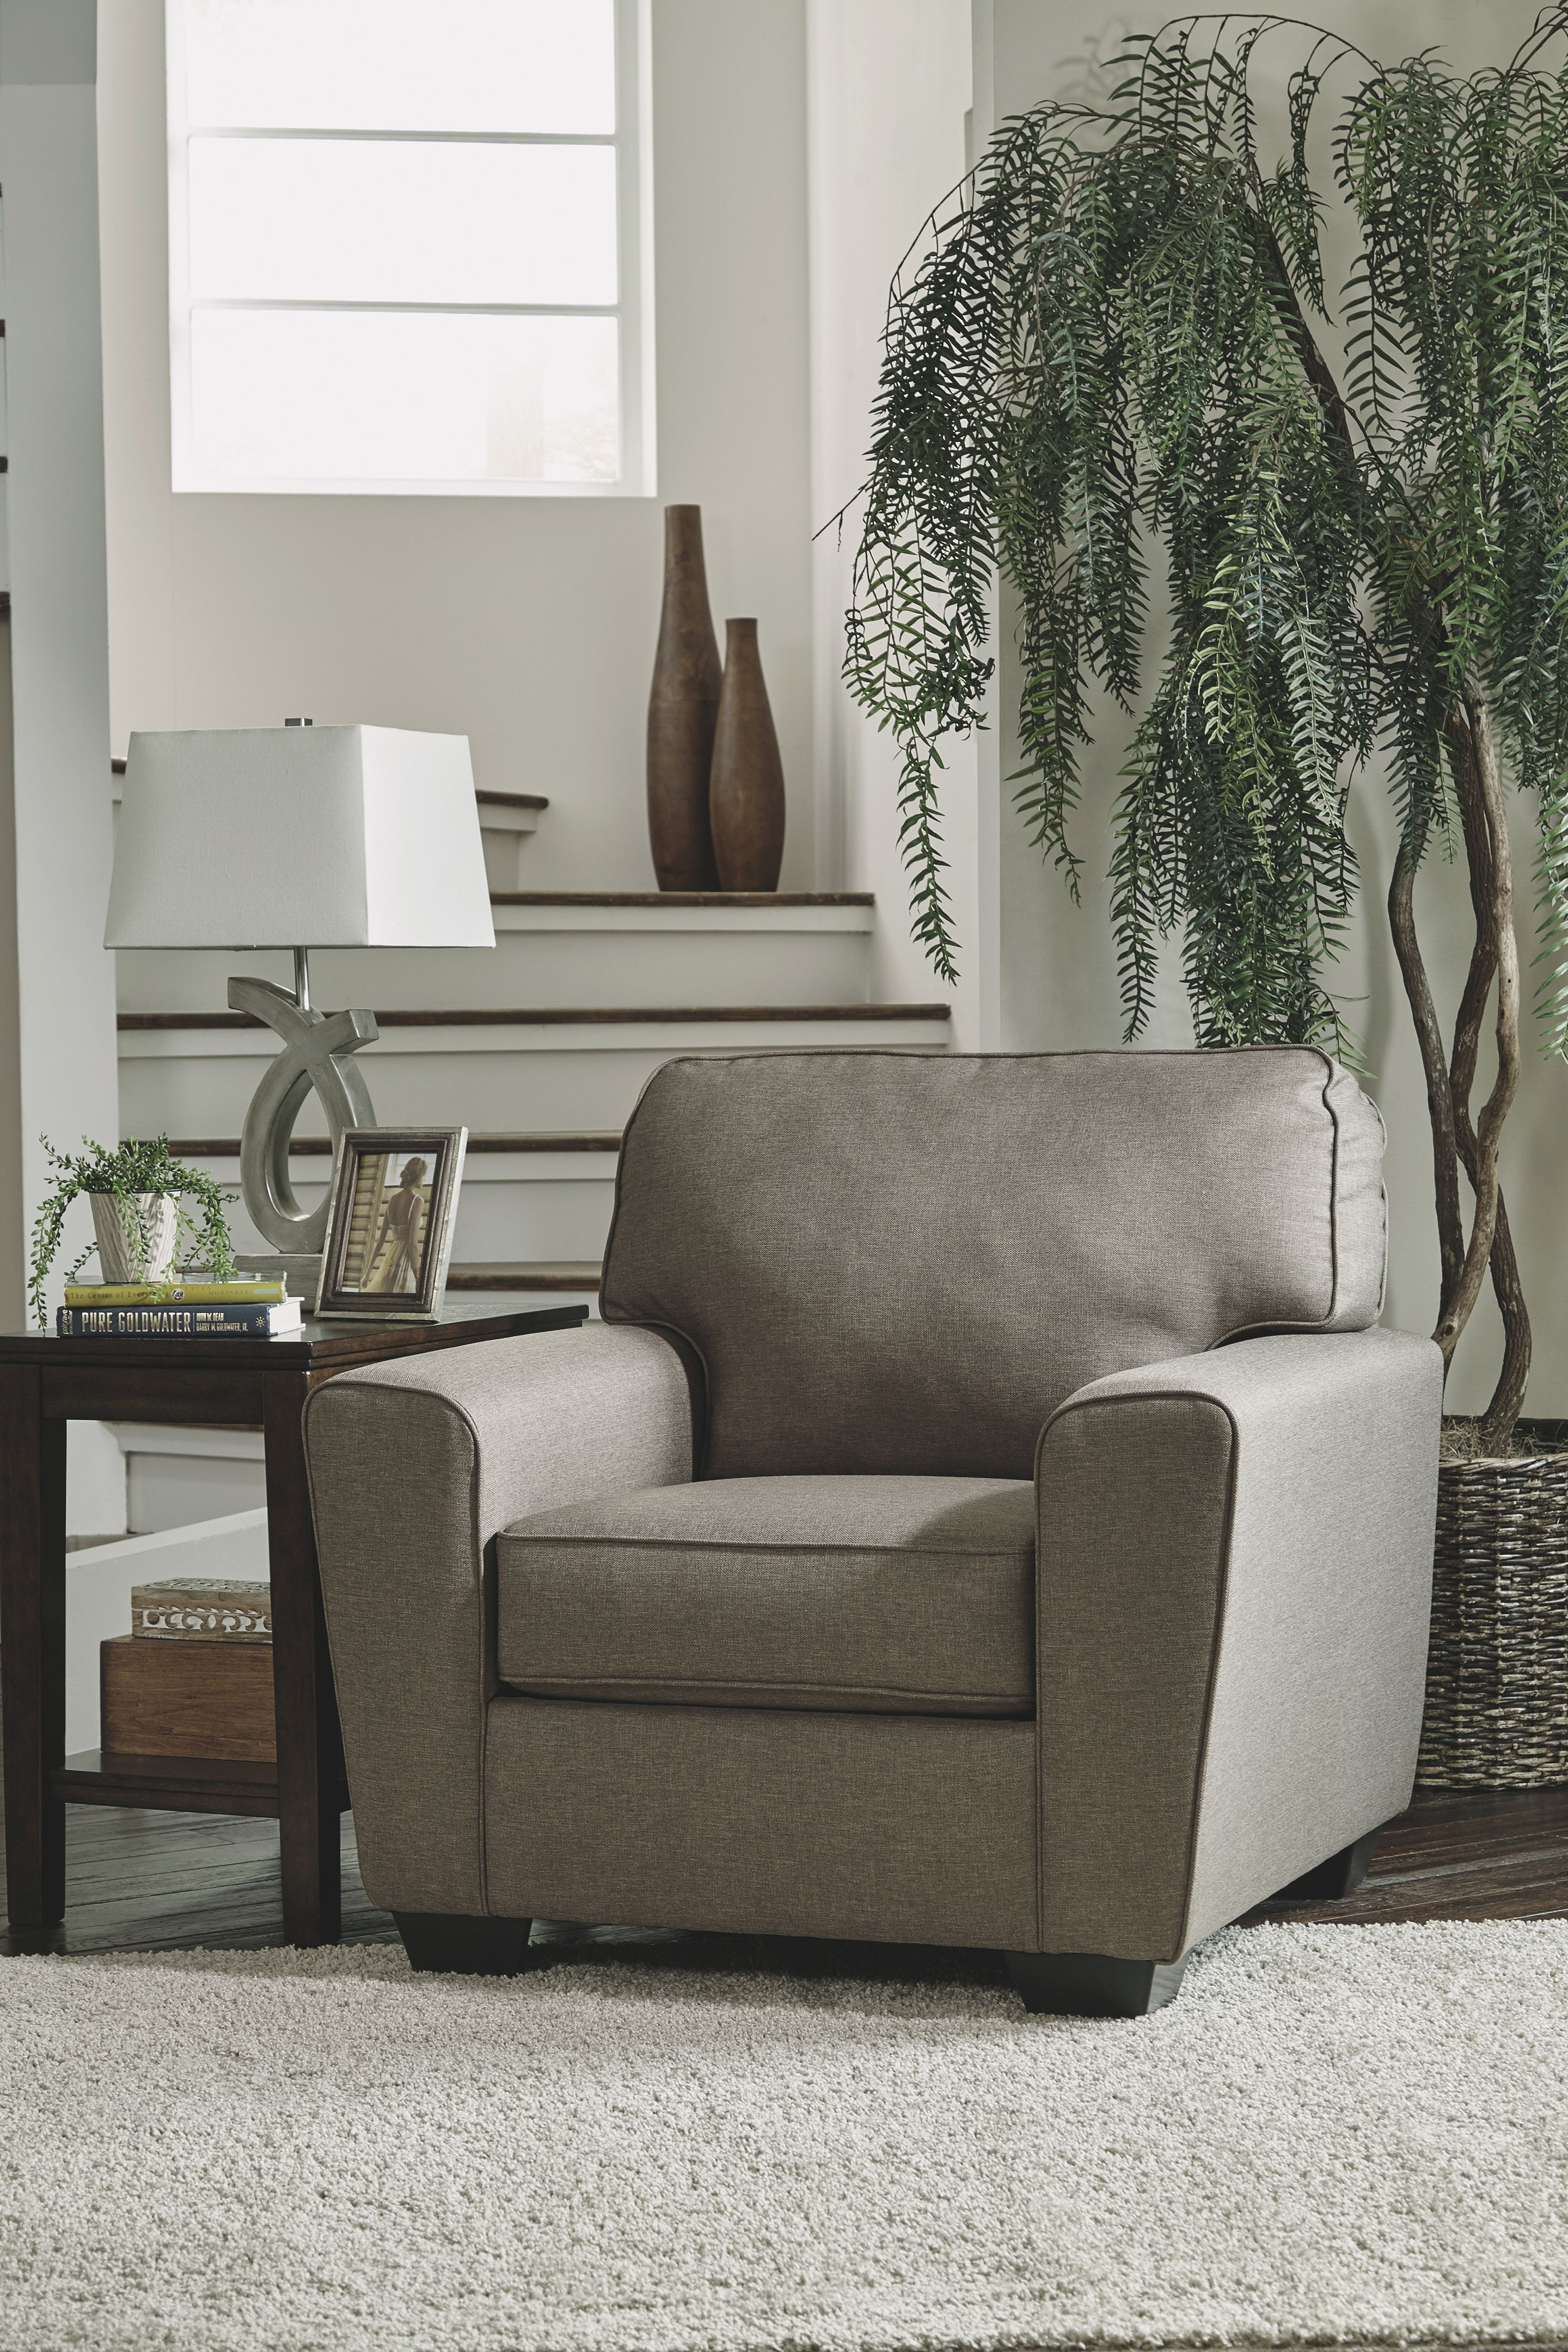 Signature Design By Ashley Living Room Chair 9120220   Smokey Mountain  Furniture   Hudson, NC